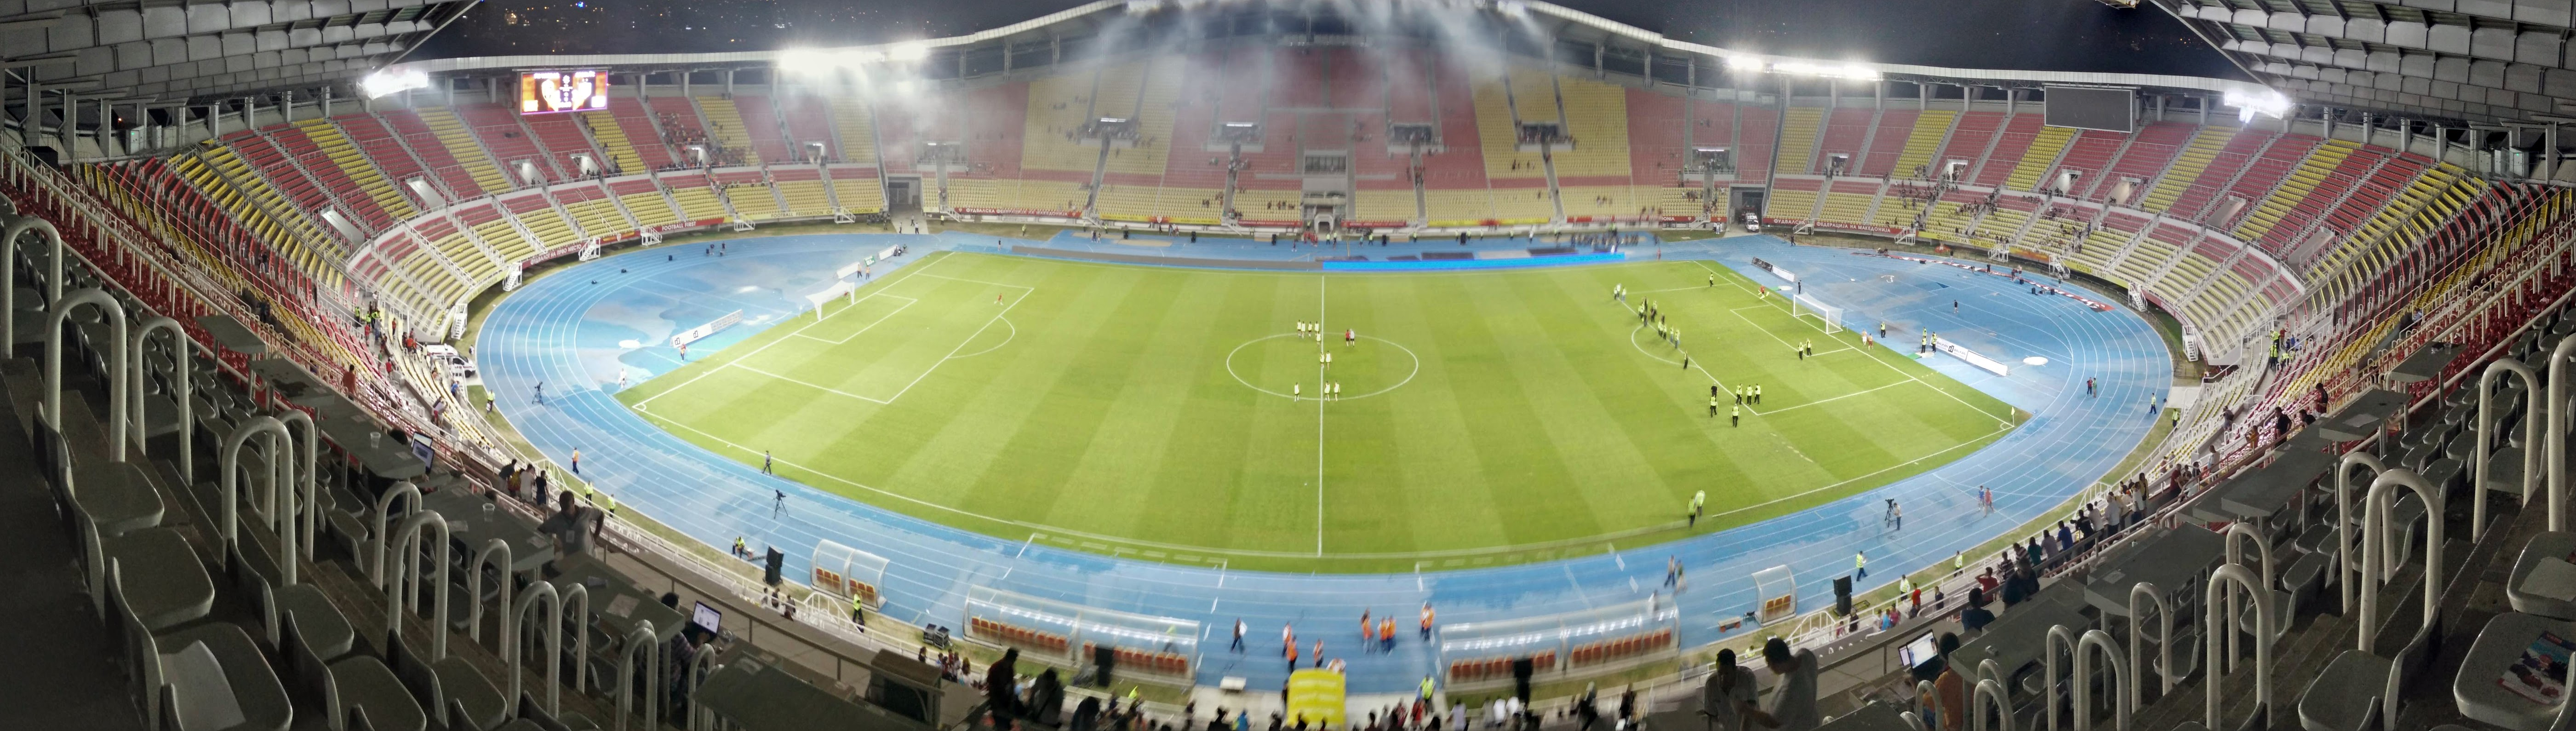 A high panoramic shot of the stadium post game.